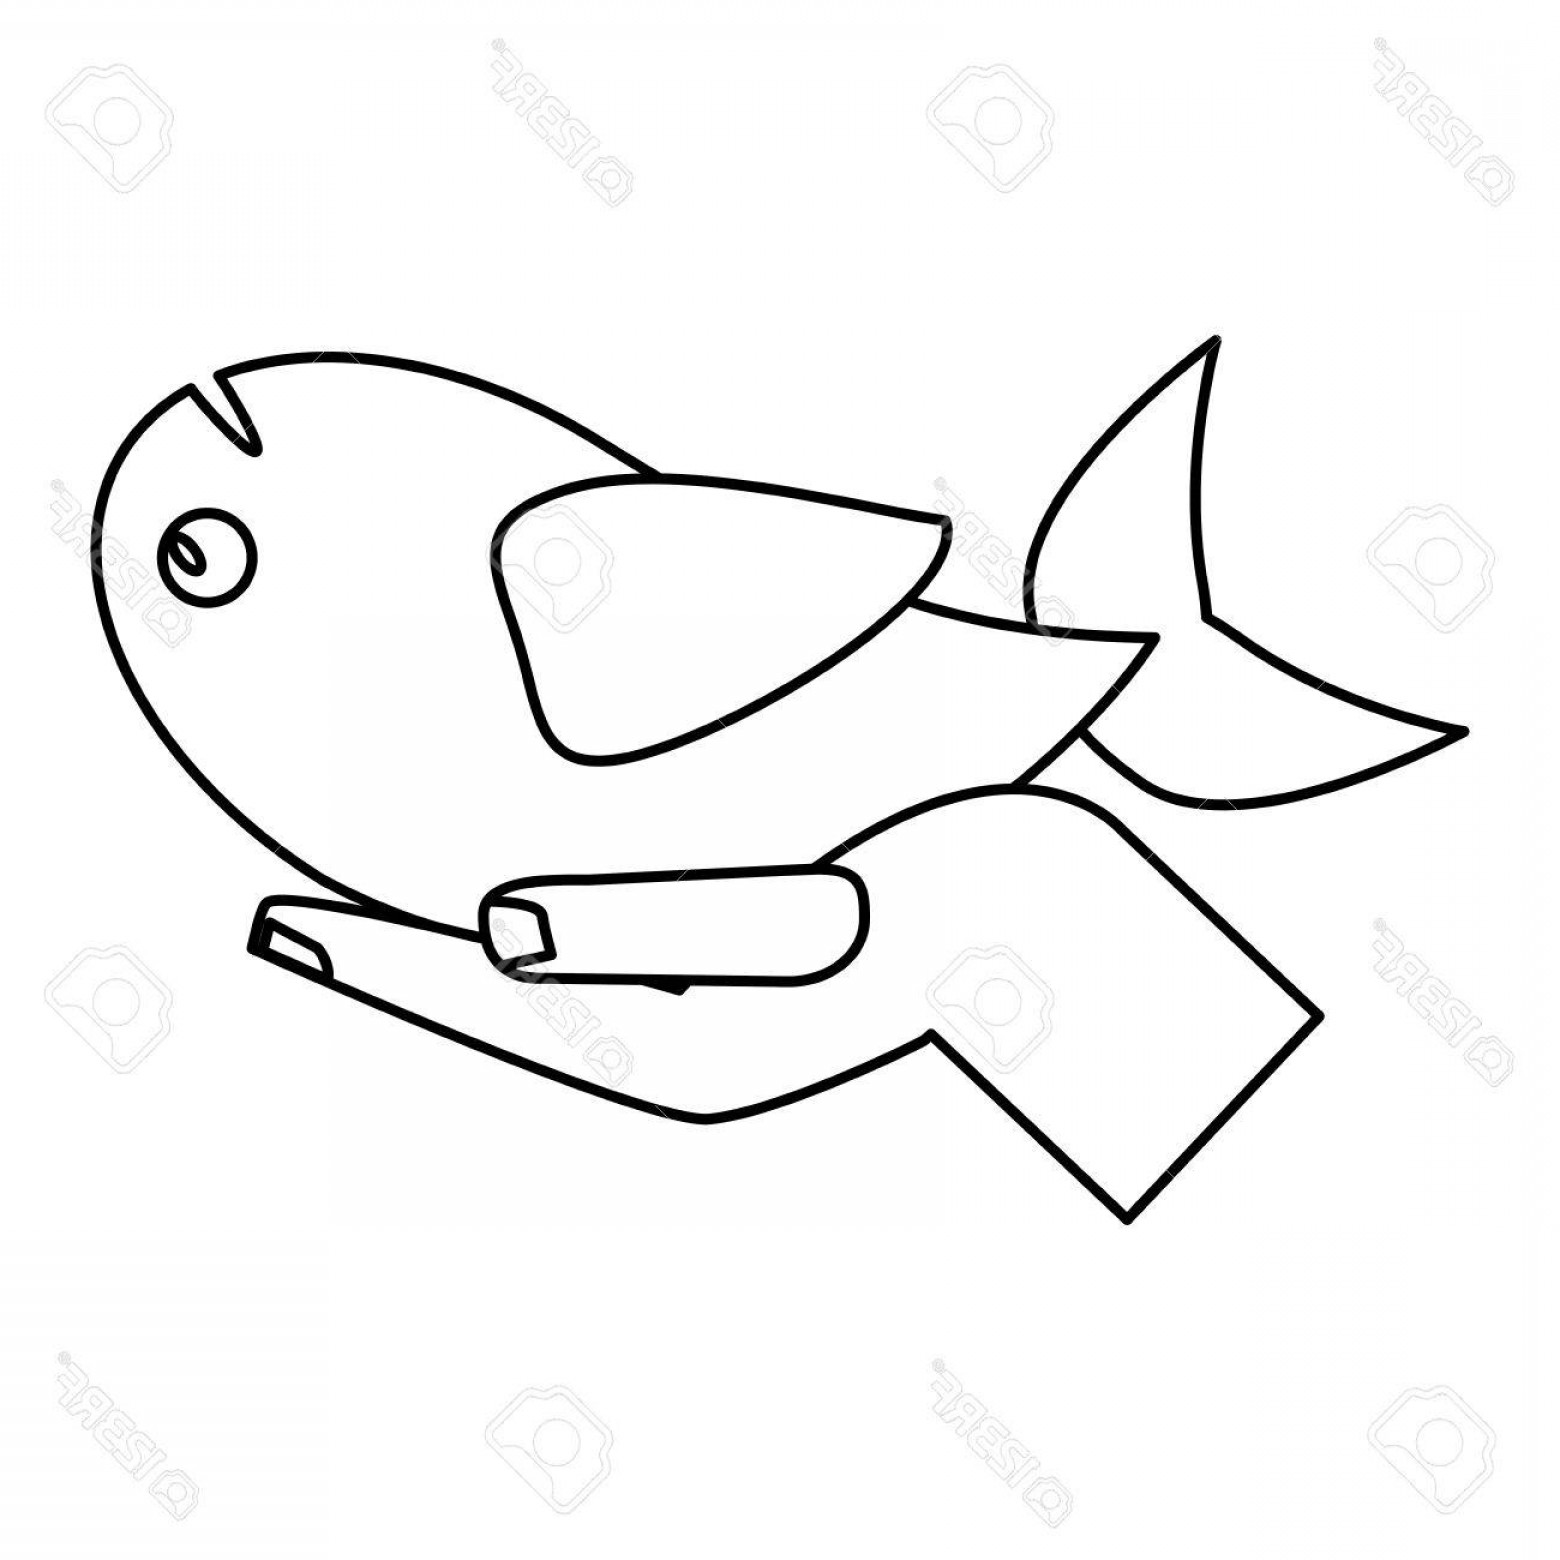 Christ Fish Vector: Photostock Vector Hand With Fish Miracle Jesus Christ Religious Outline Vector Illustration